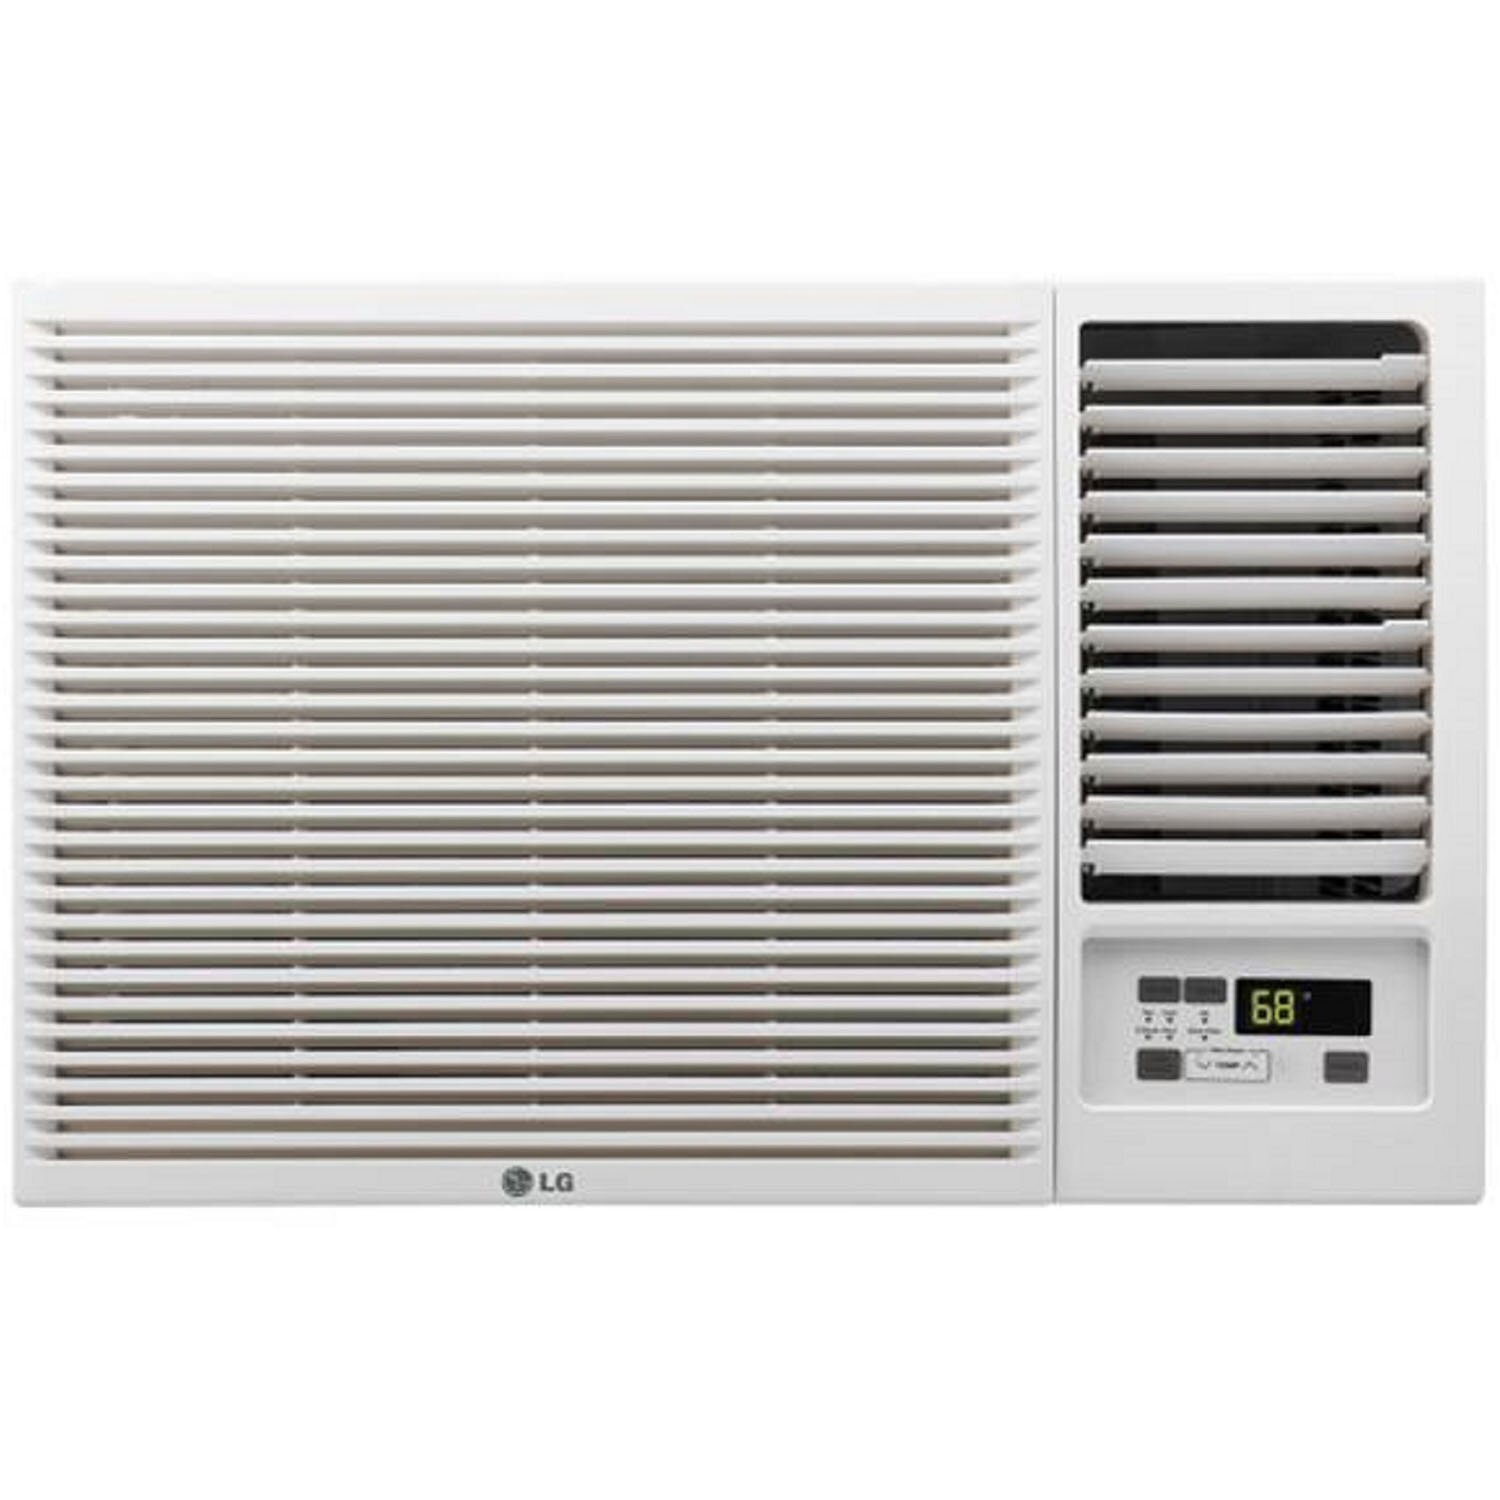 lg 12000 btu window air conditioner wayfair